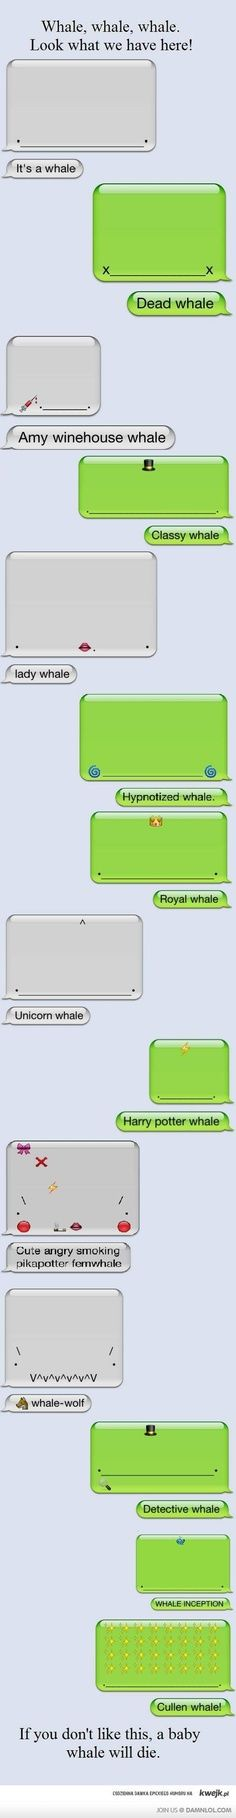 Who wouldn't. His is frieking funny and I don't want a whale to die